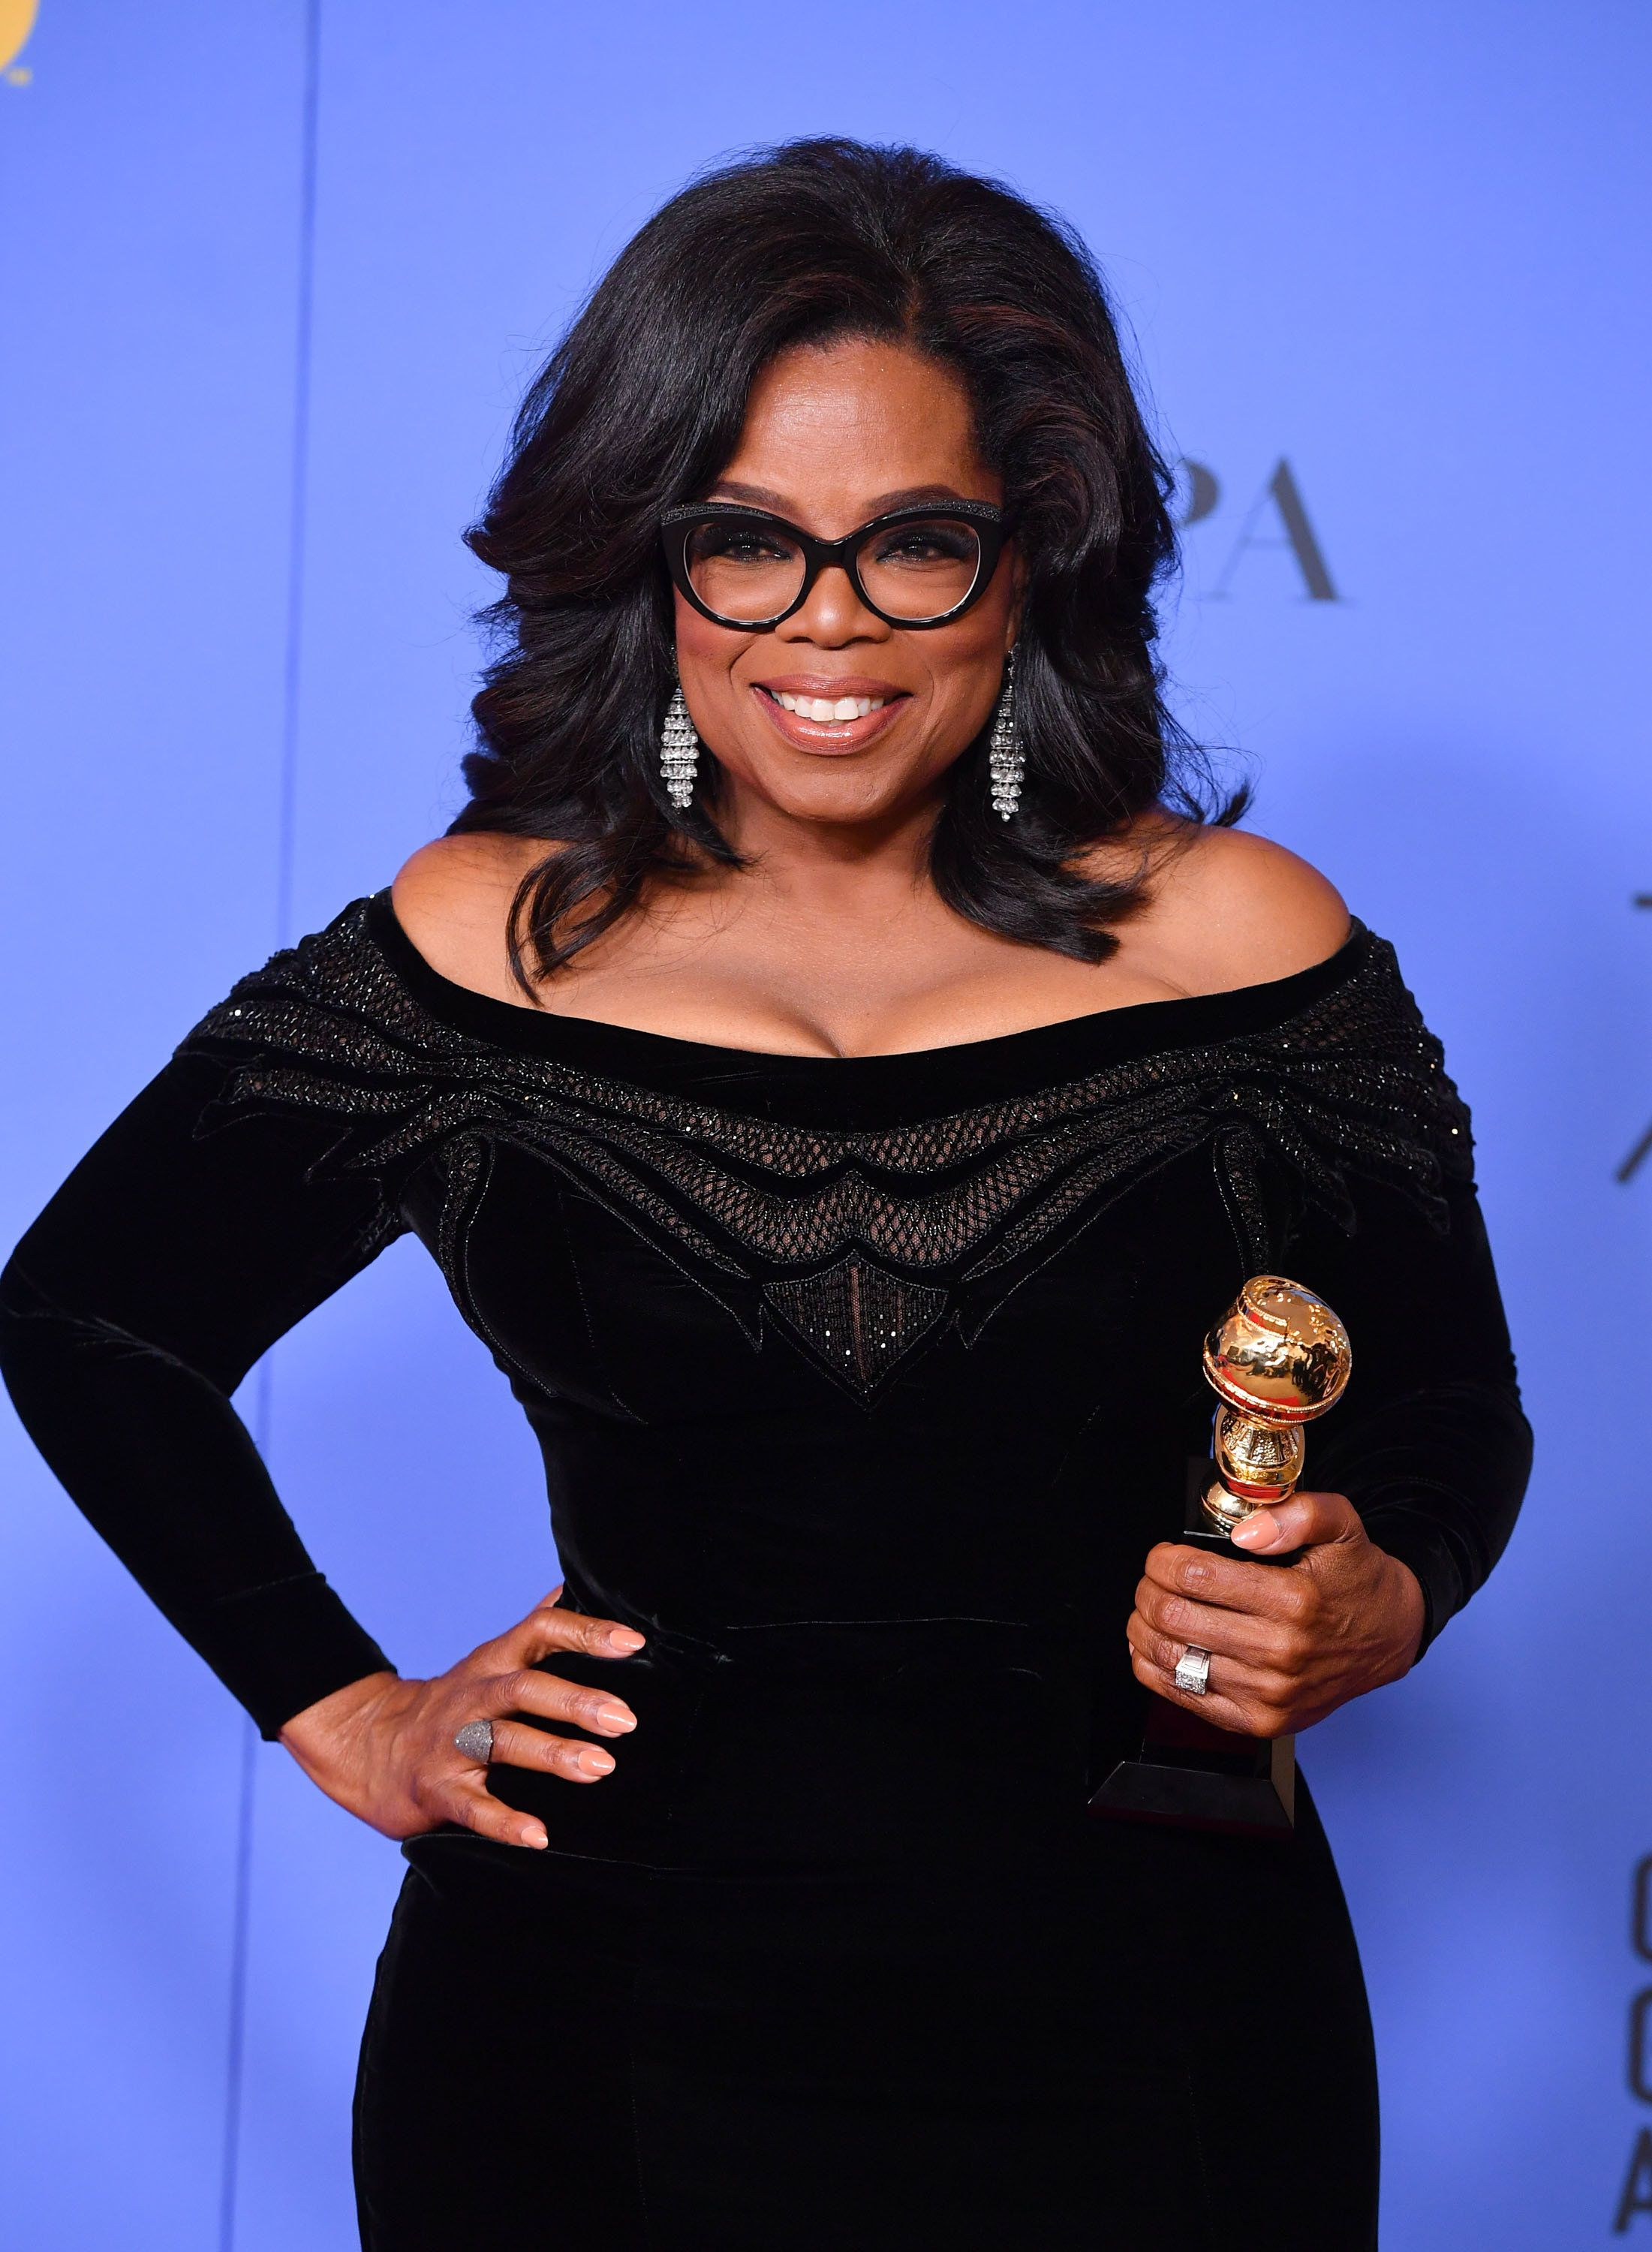 GEORGE PIMENTEL VIA GETTY IMAGES Oprah Winfrey poses with the Cecil B. DeMille Award at the 75th Annual Golden Globe Awards on Sunday.